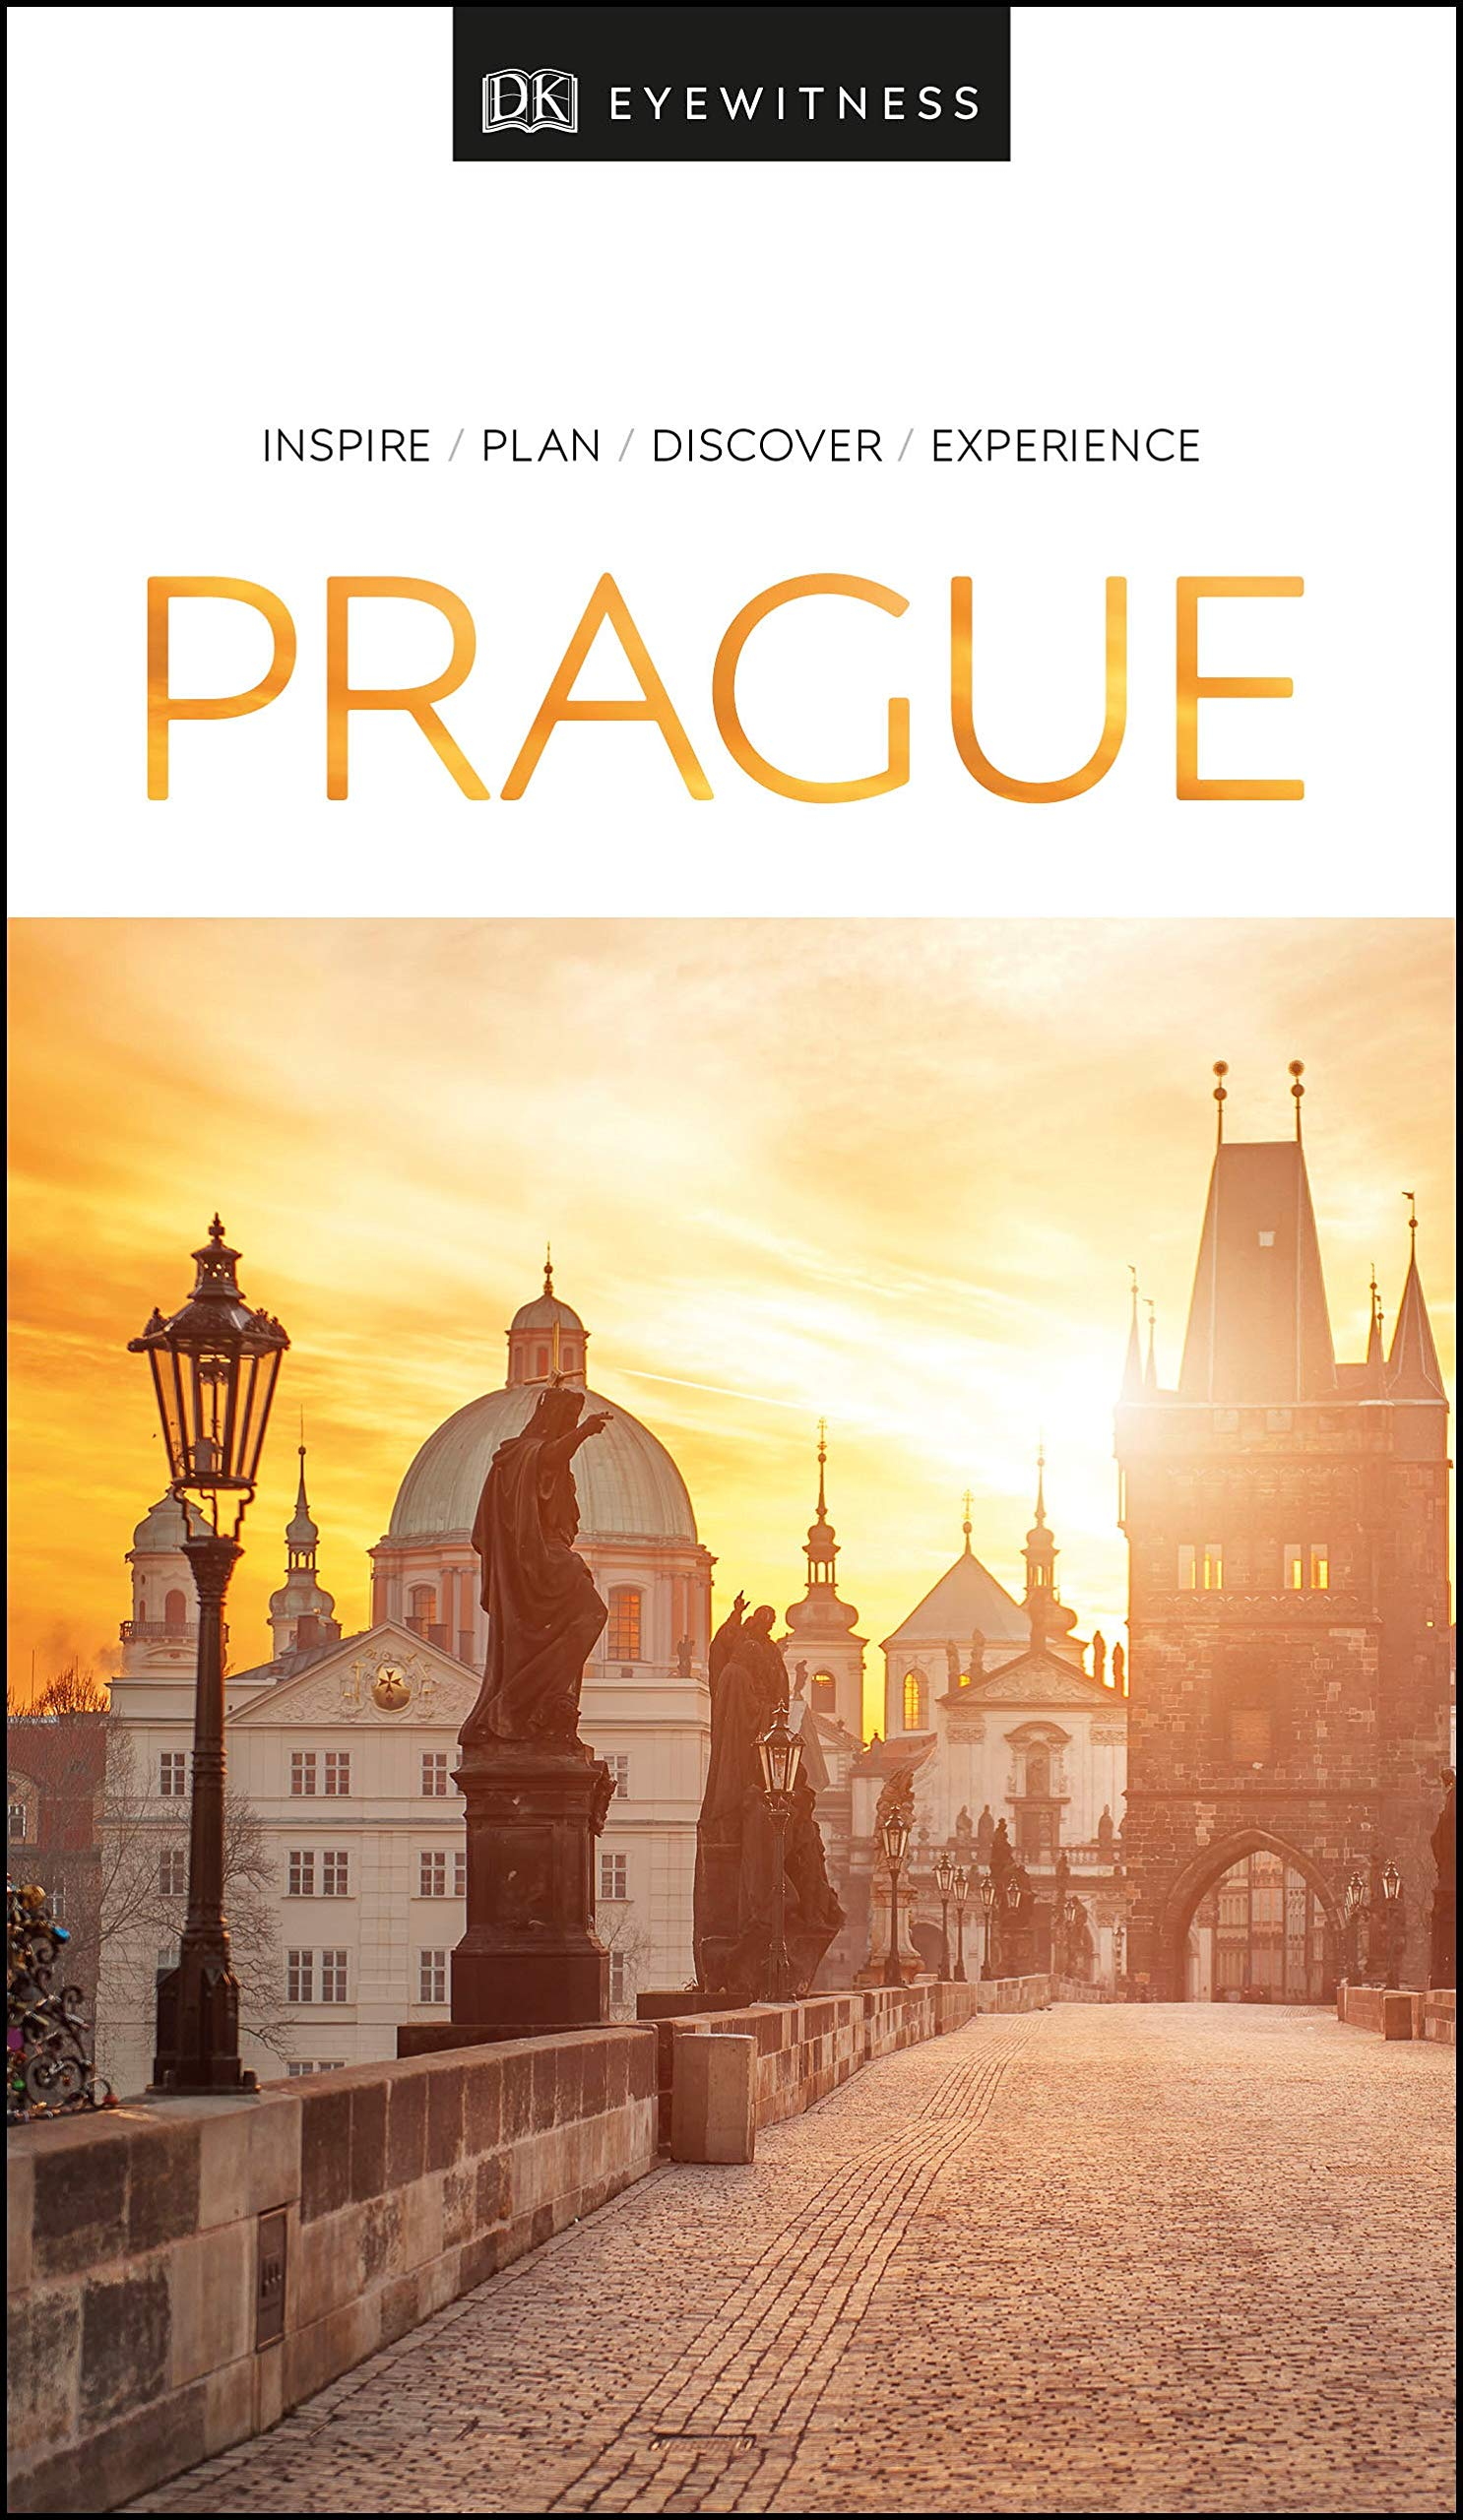 DK Eyewitness Travel Guide Prague (2020 Edition)